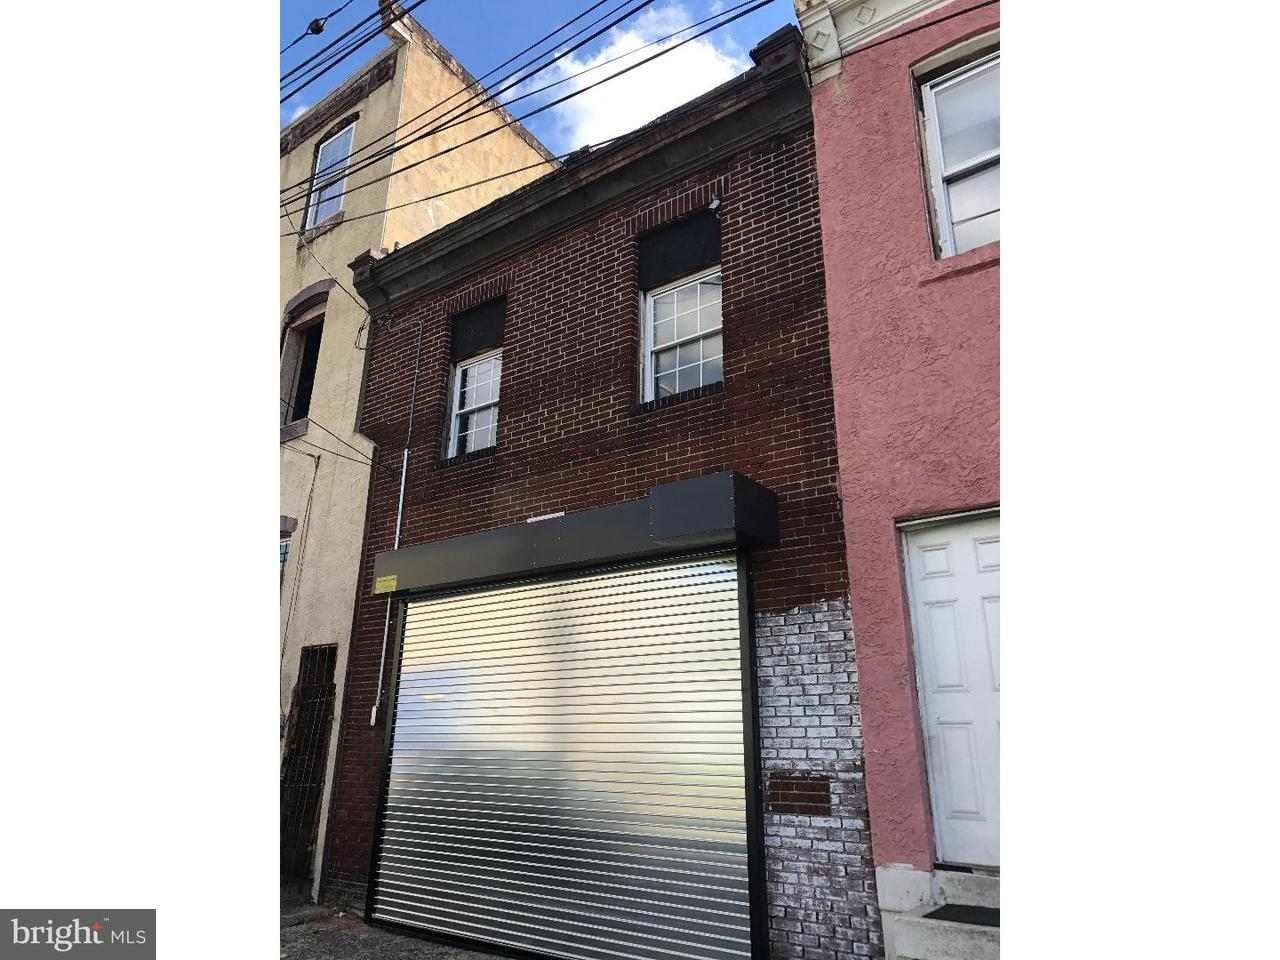 2549 N 6TH Philadelphia, PA 19133